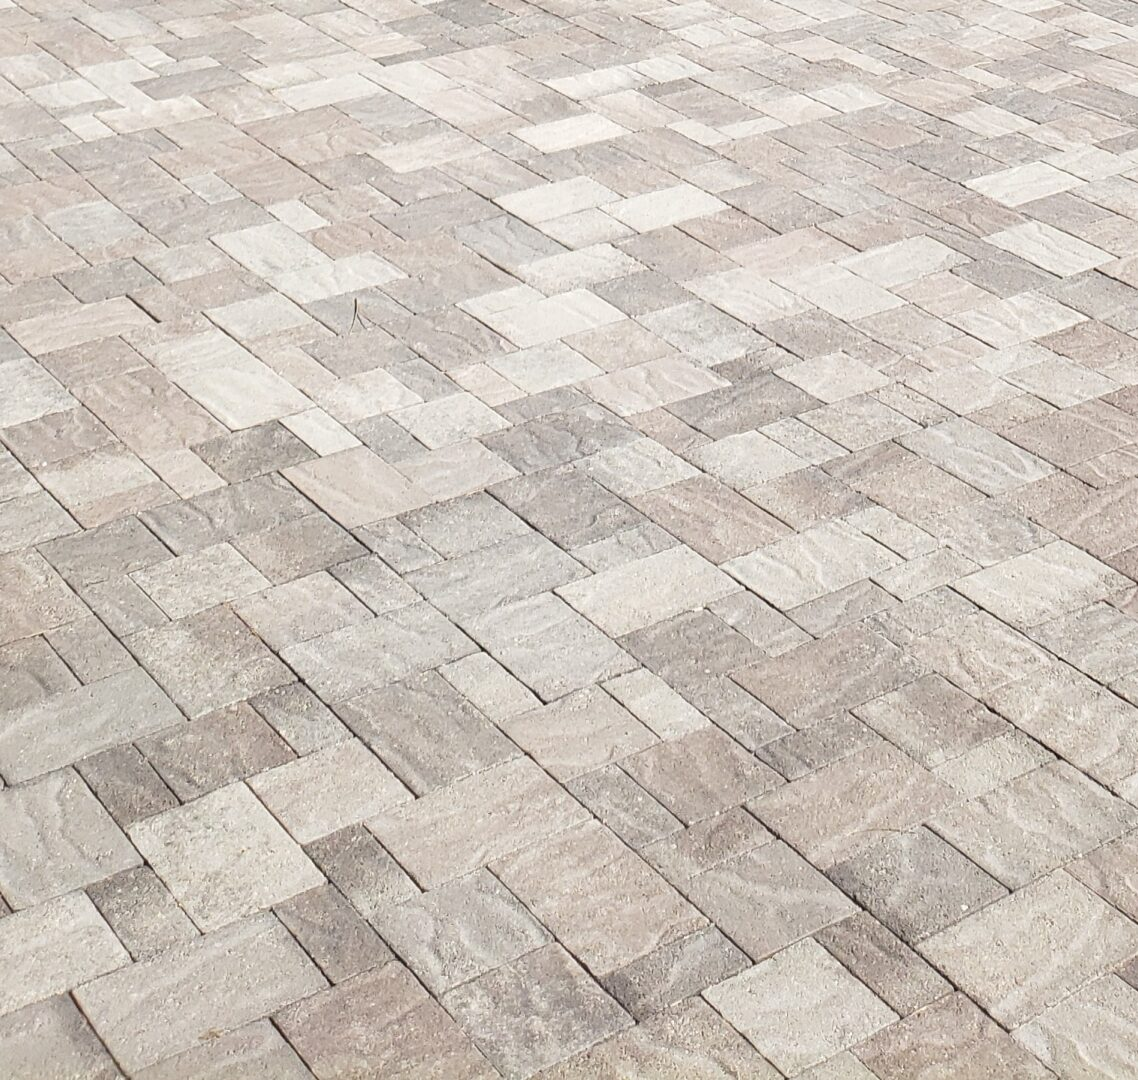 pavers close up